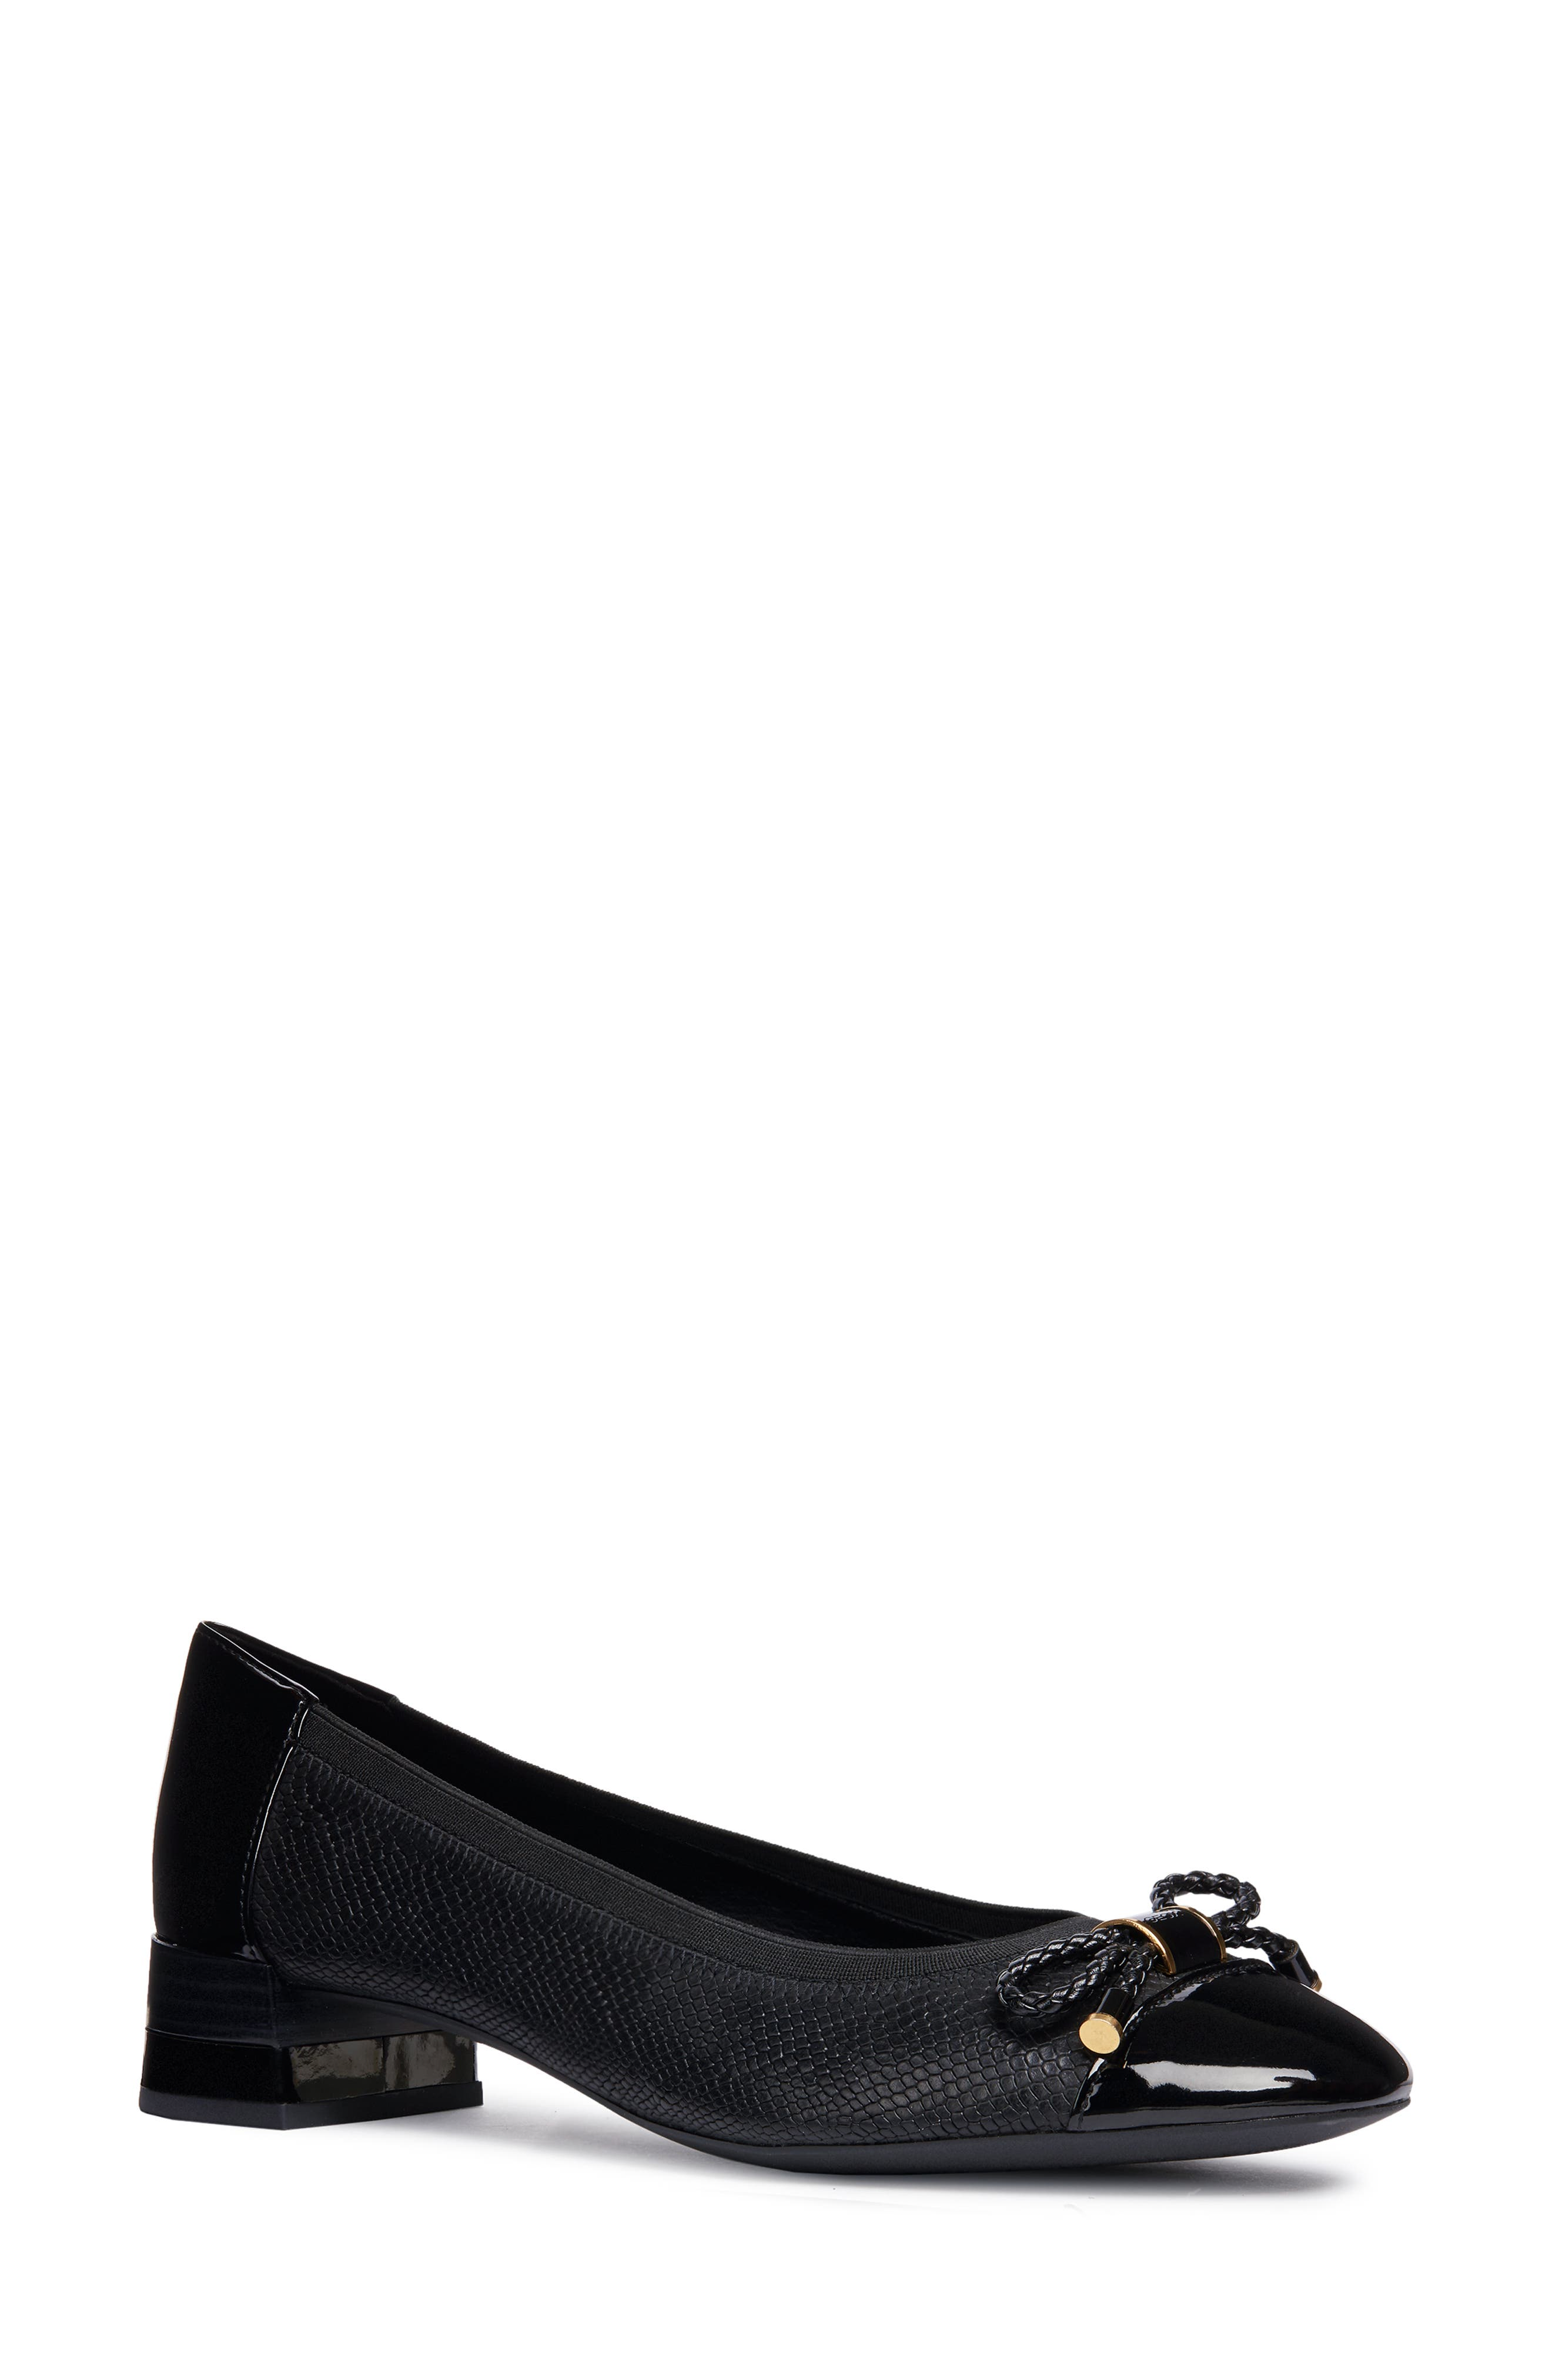 Chloo Pump,                             Main thumbnail 1, color,                             BLACK LEATHER